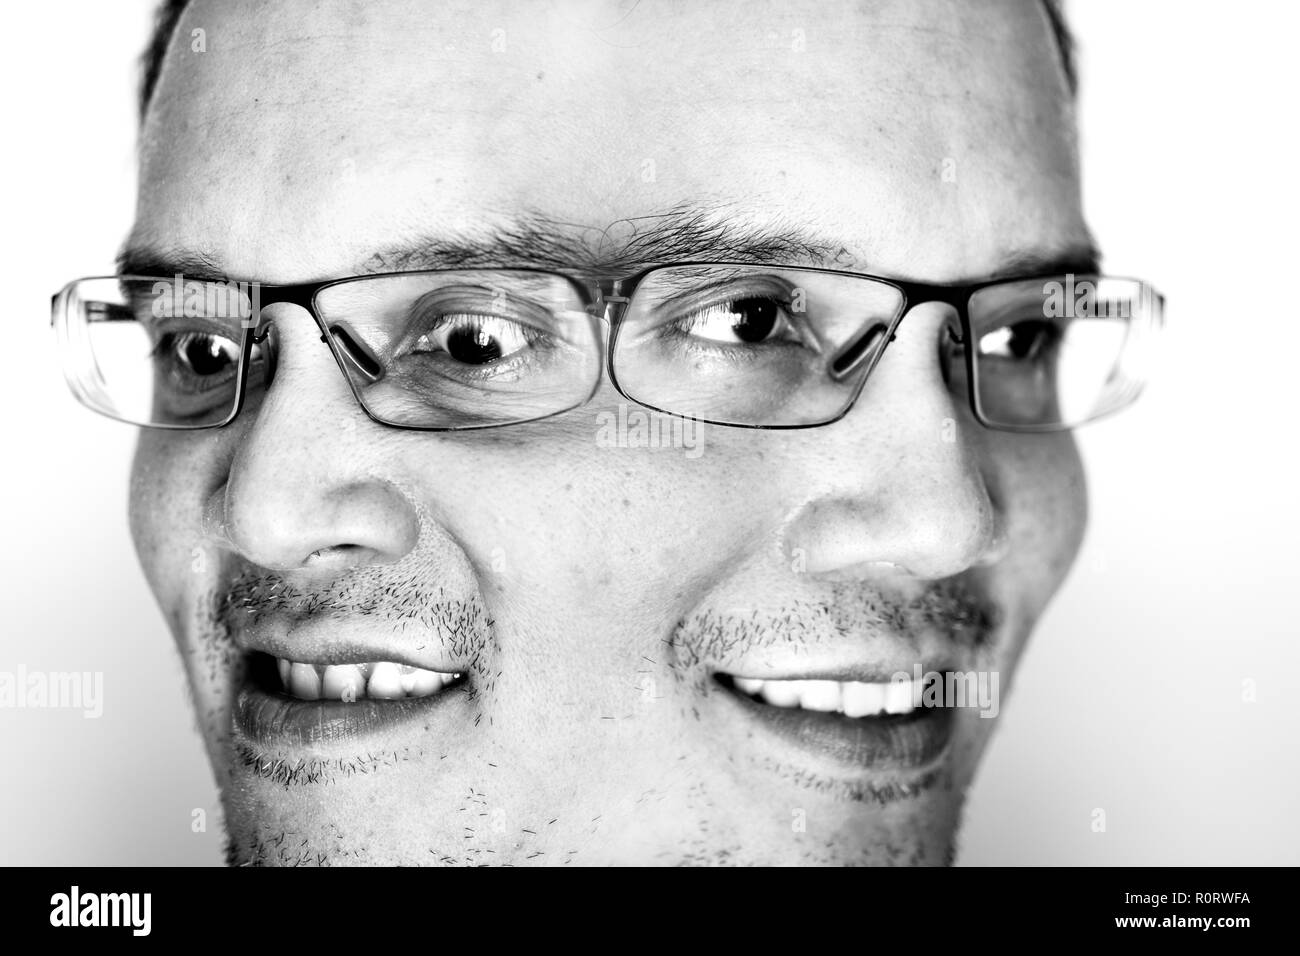 Two emotion face of a man. One is happy with smile, another in angry and mad. - Stock Image